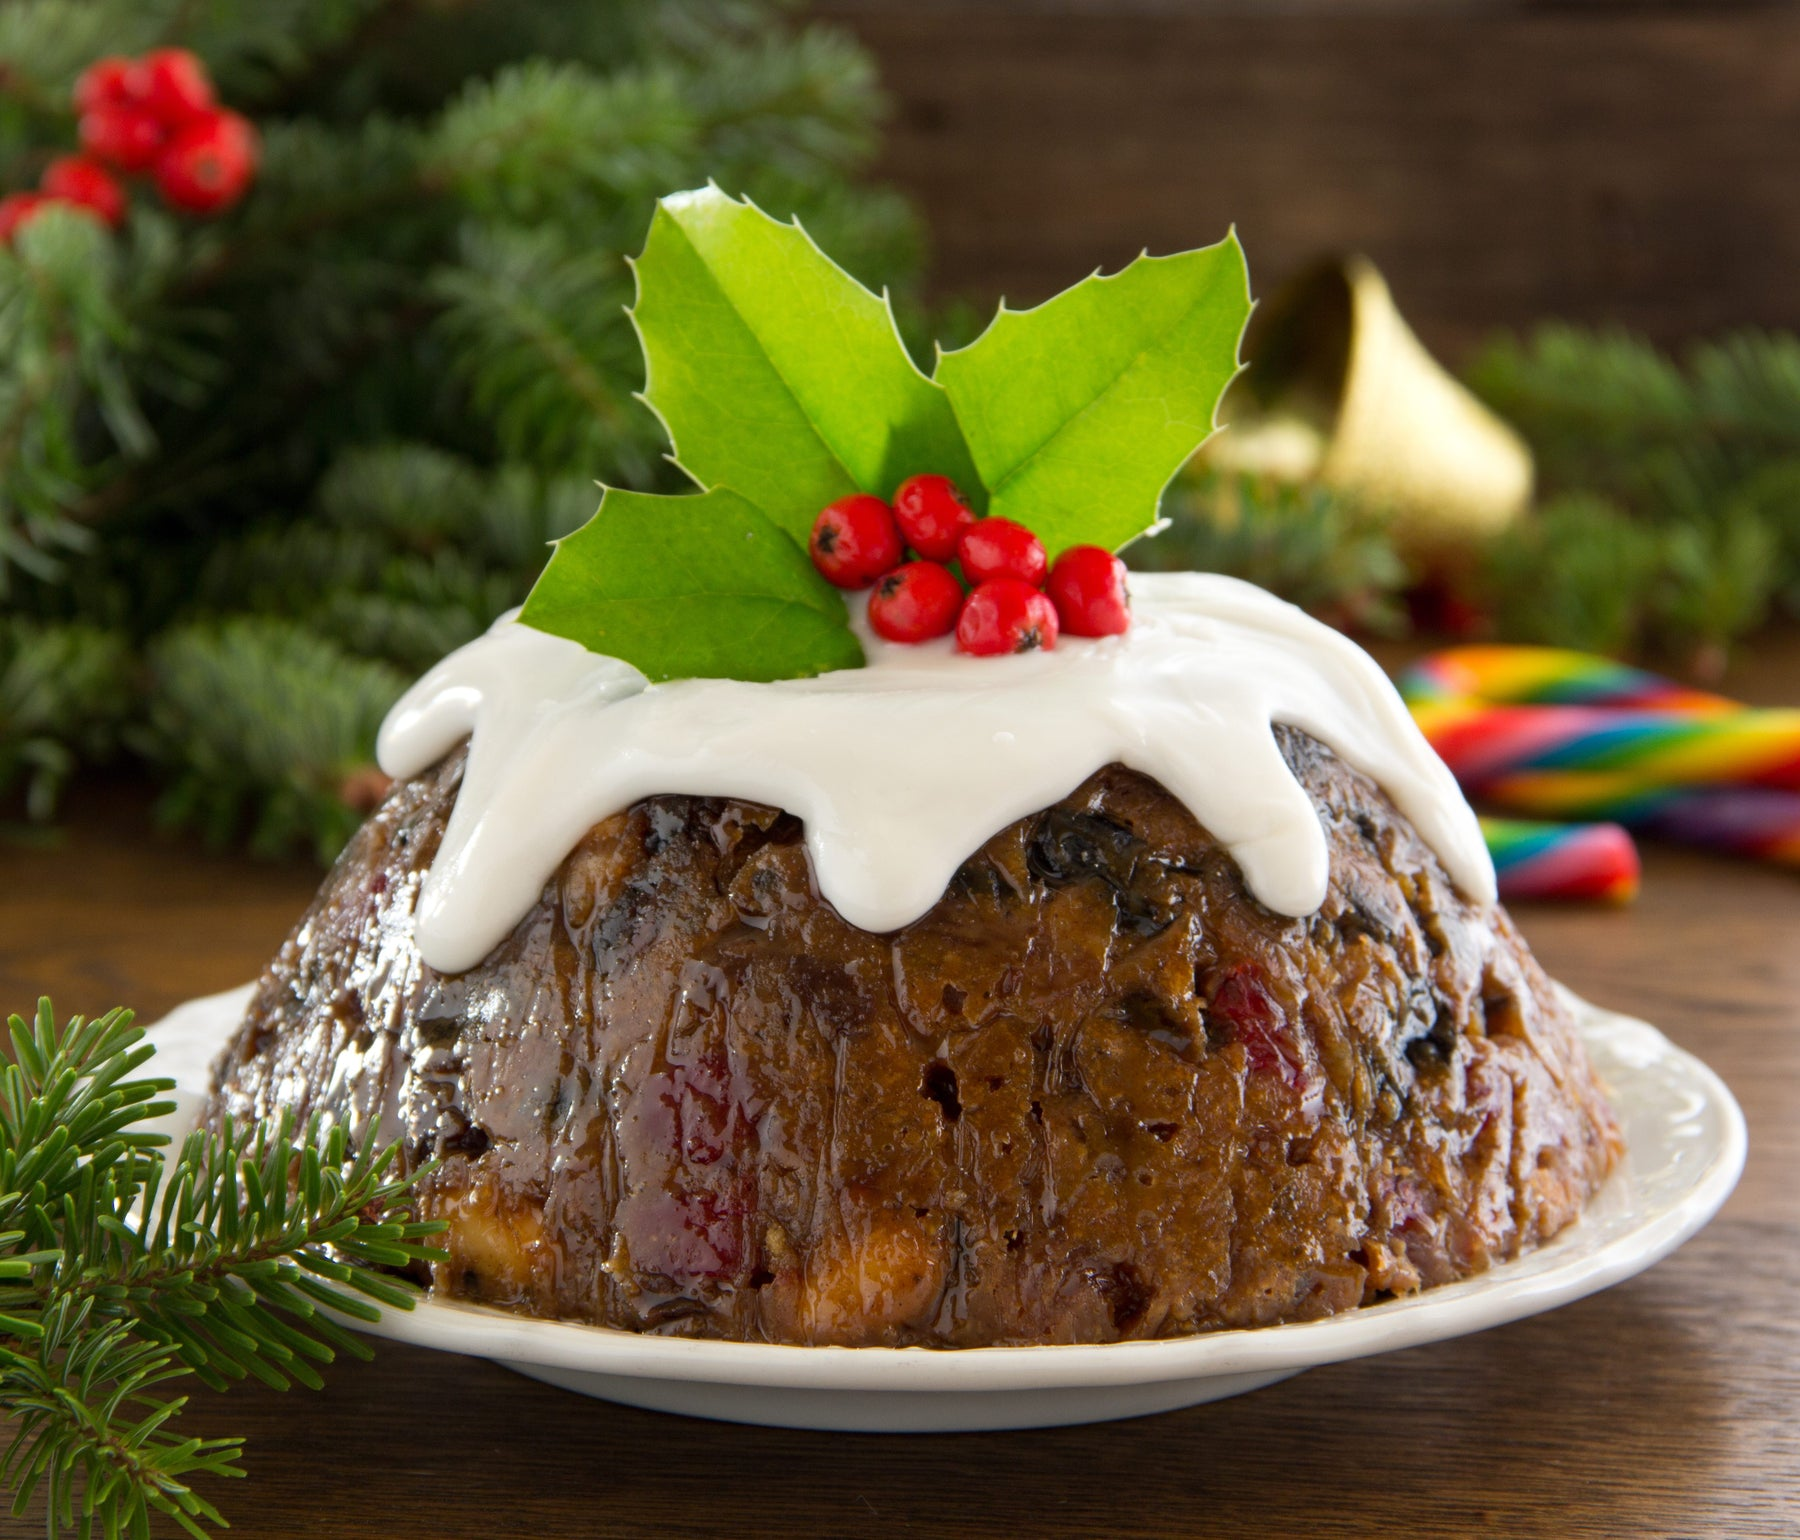 A holiday tradition for some, a new adventure for others - the Holiday Pudding!